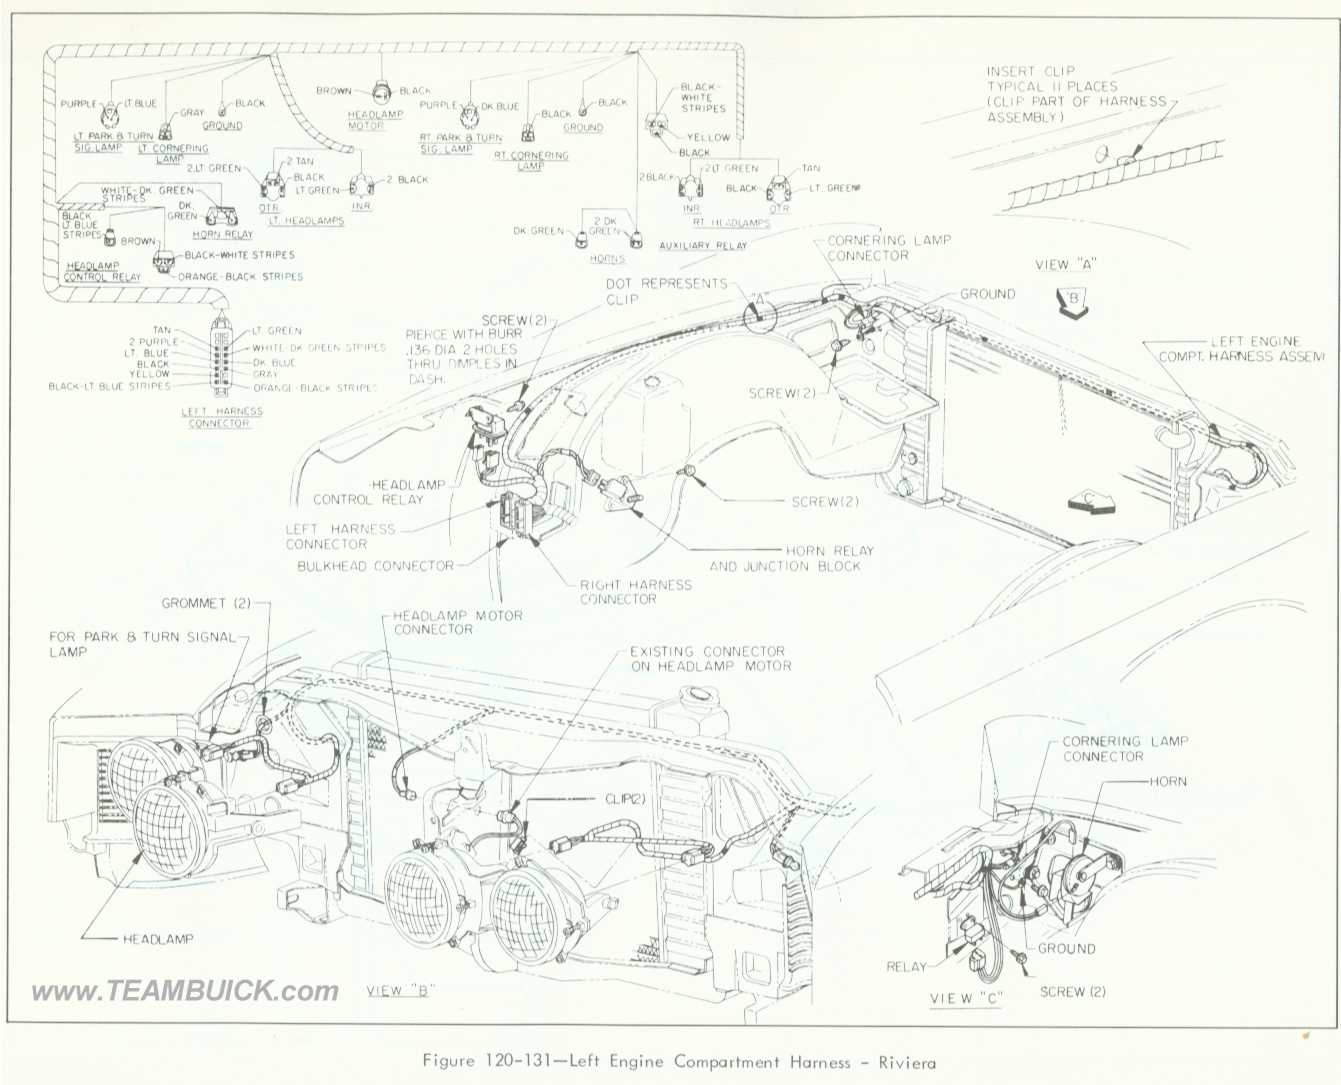 1966 Buick Riviera, Left Engine Compartment Wiring